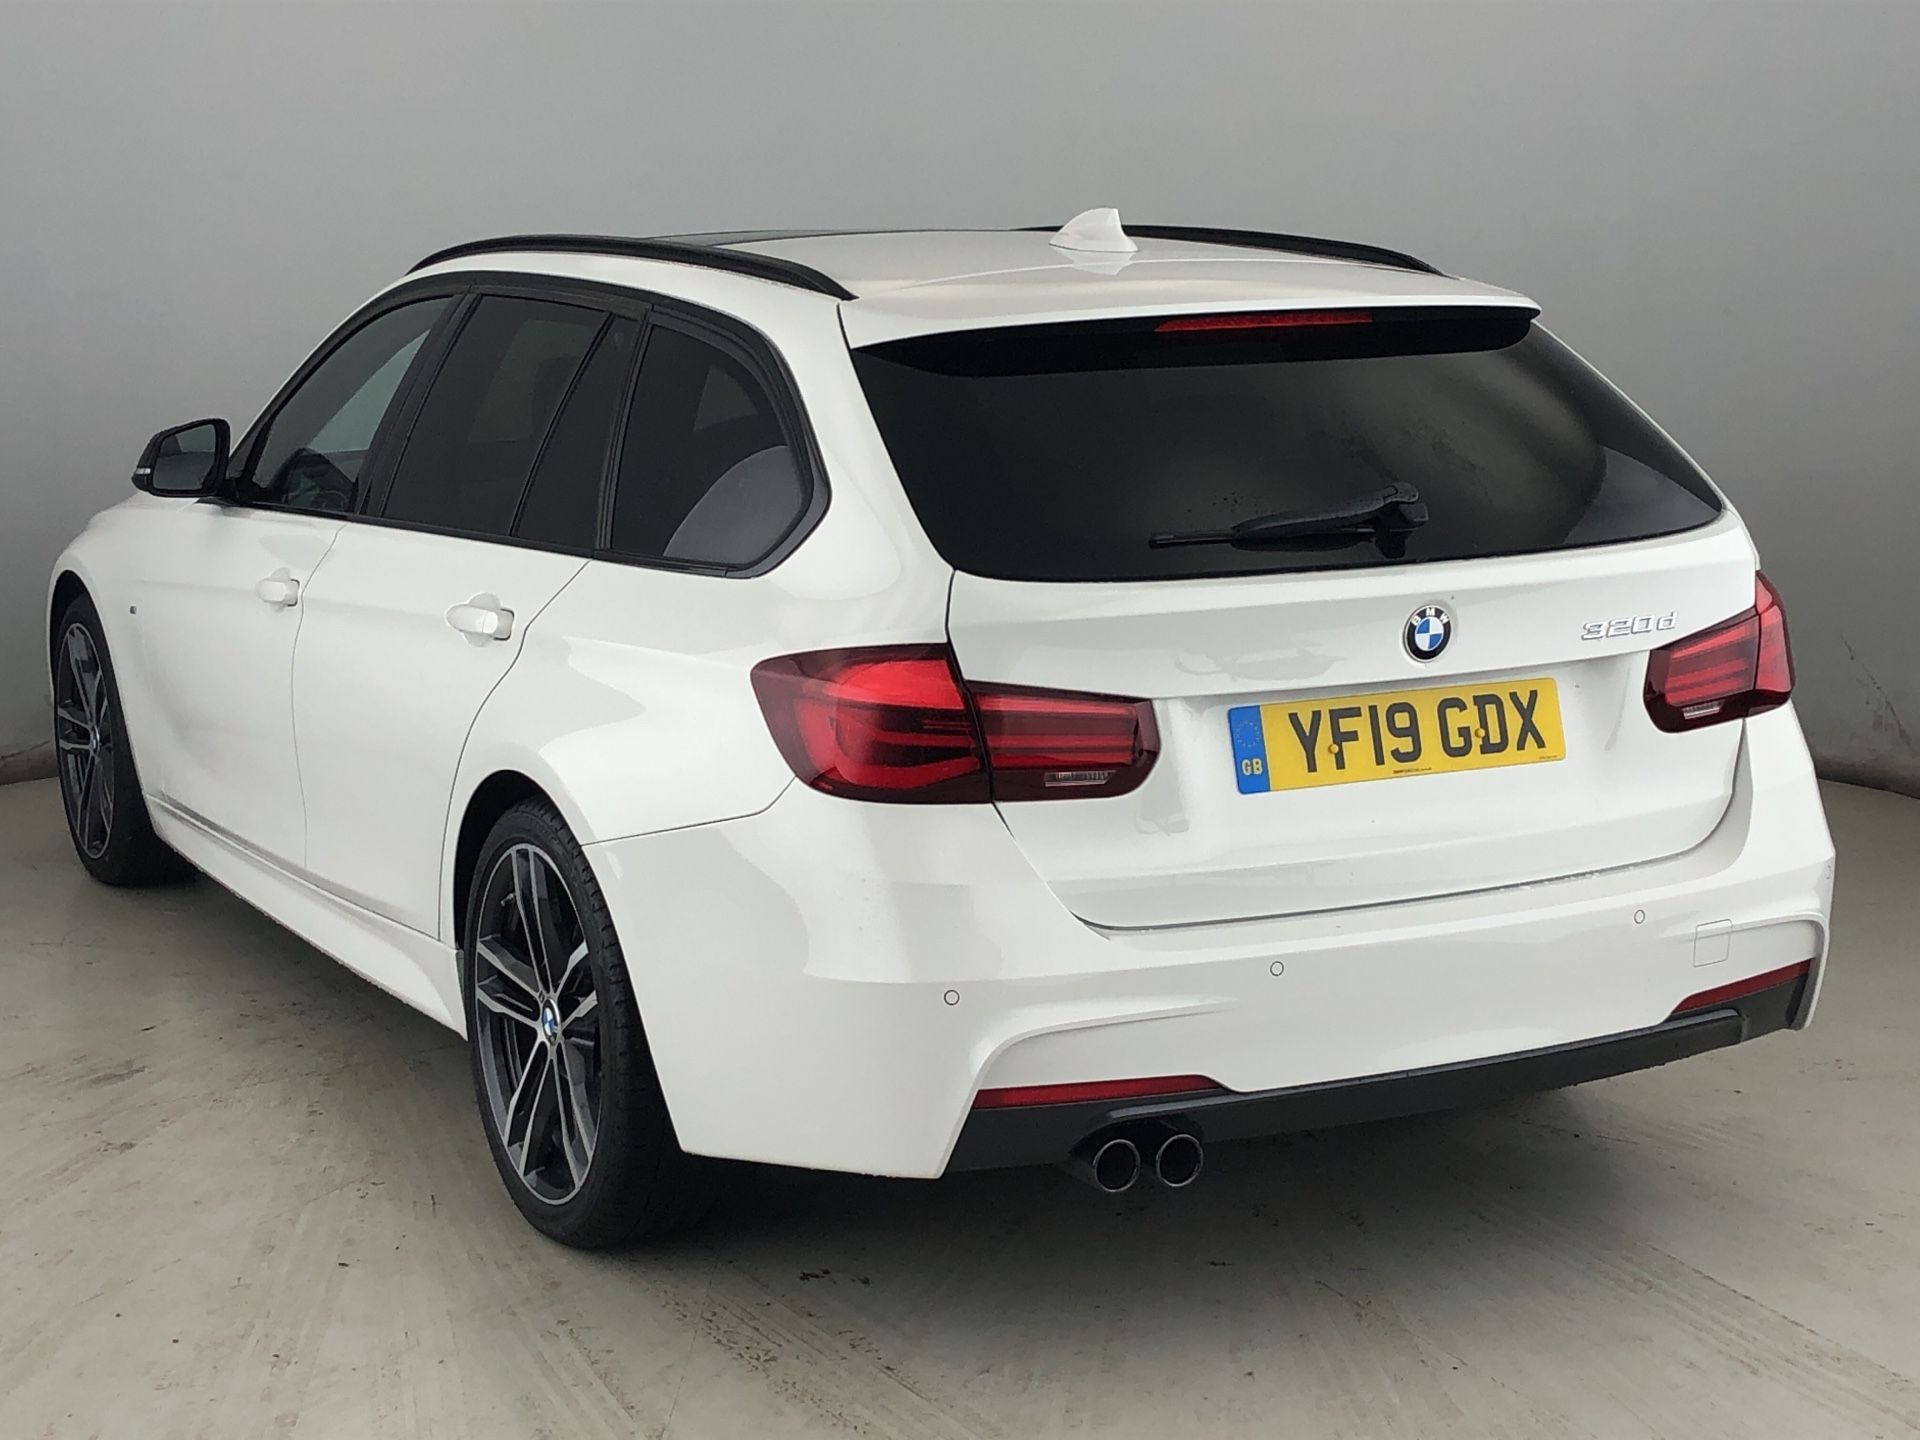 Image 2 - BMW 320d M Sport Shadow Edition Touring (YF19GDX)